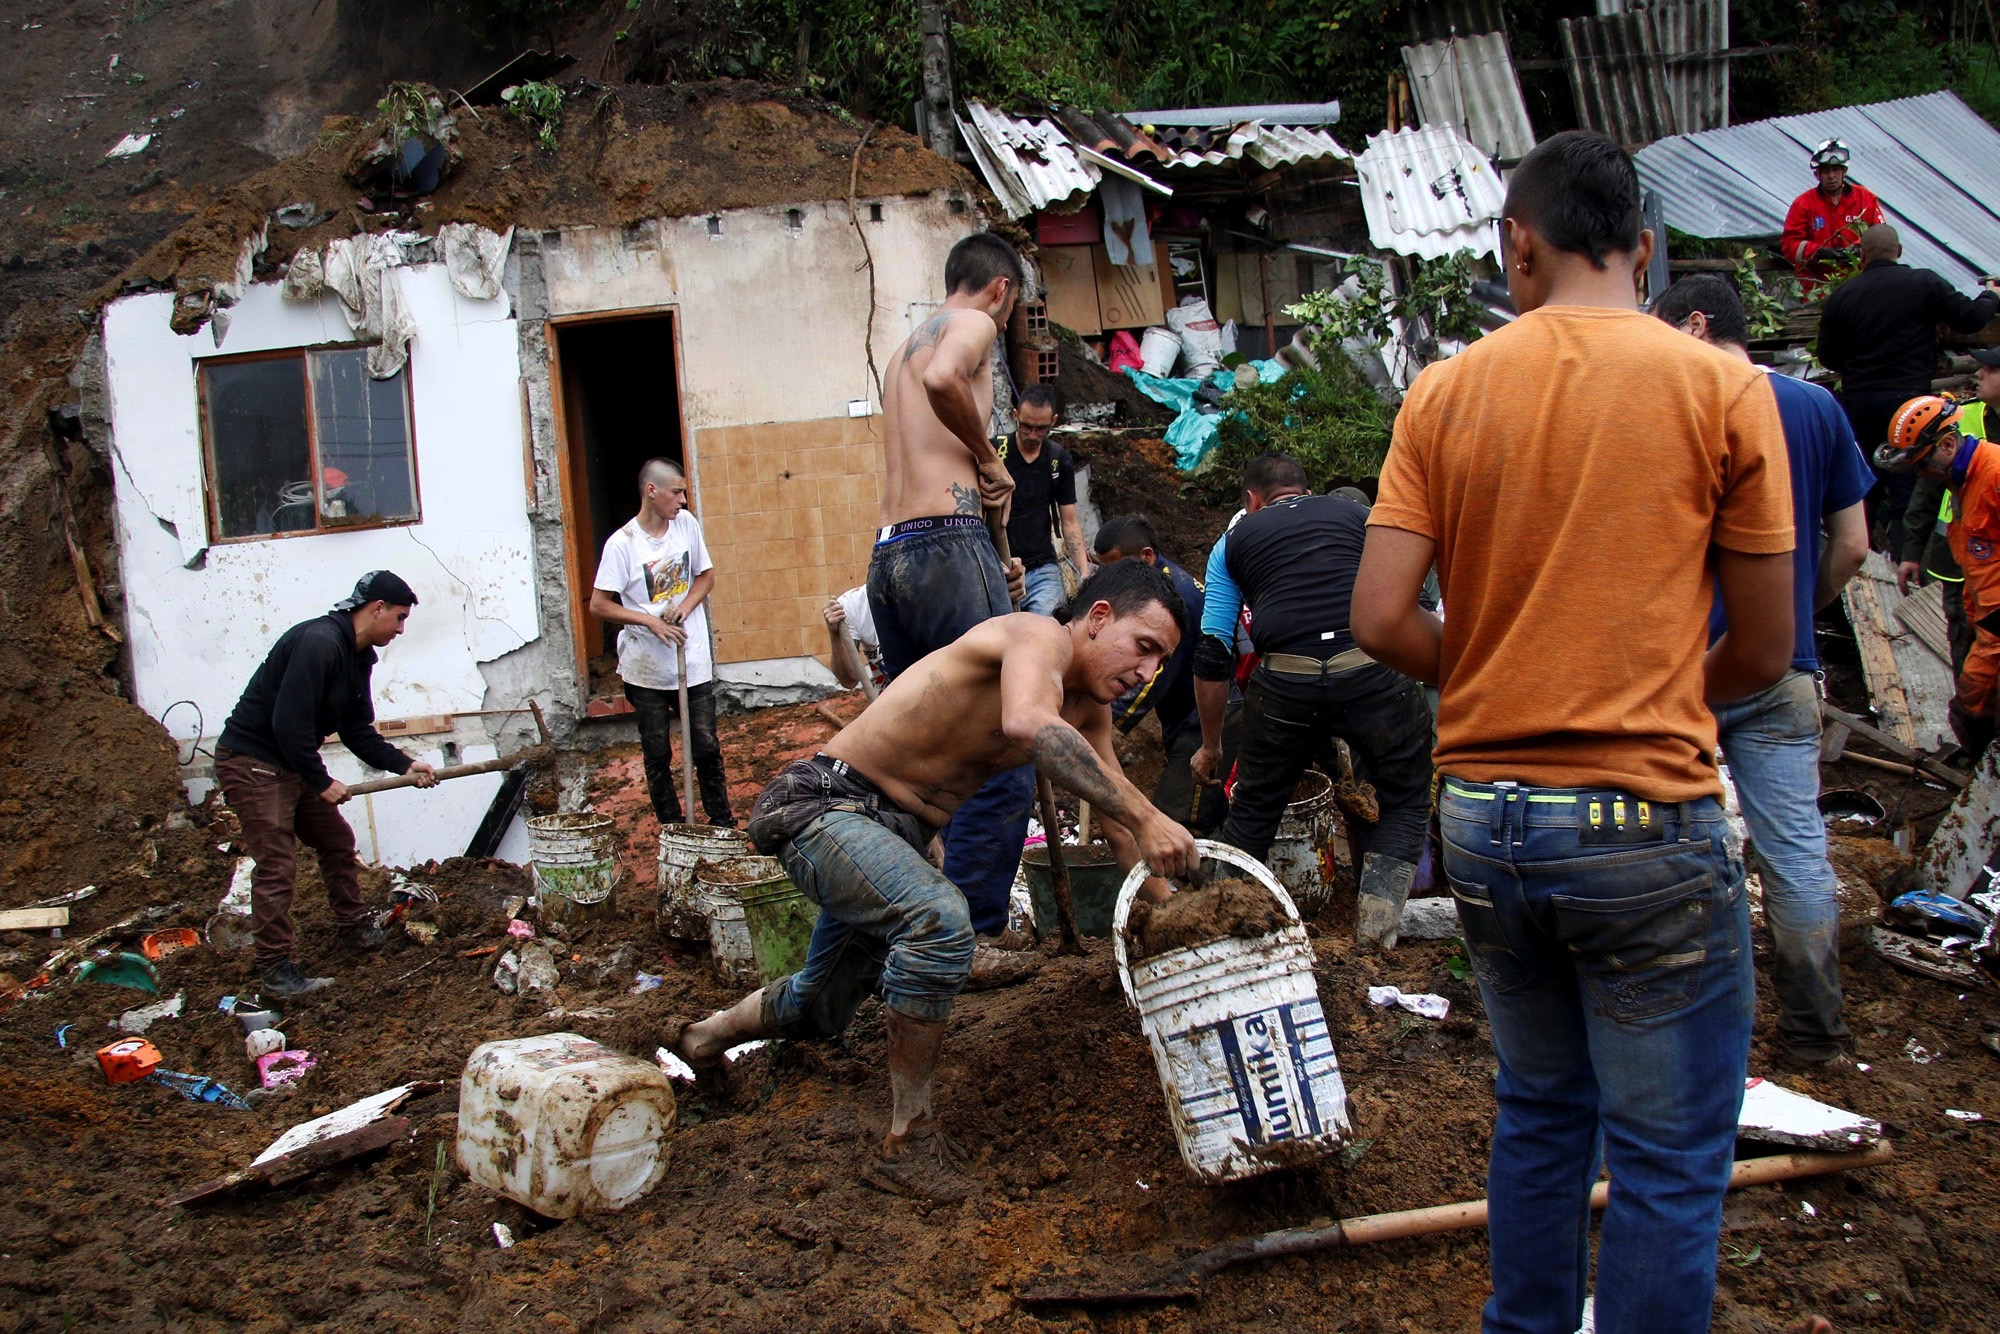 People and rescue agencies look for bodies in a destroyed area after mudslides, caused by heavy rains leading several rivers to overflow, pushing sediment and rocks into buildings and roads, in Manizales, Colombia April 19, 2017. Credit: Reuters/Santiago Osorio